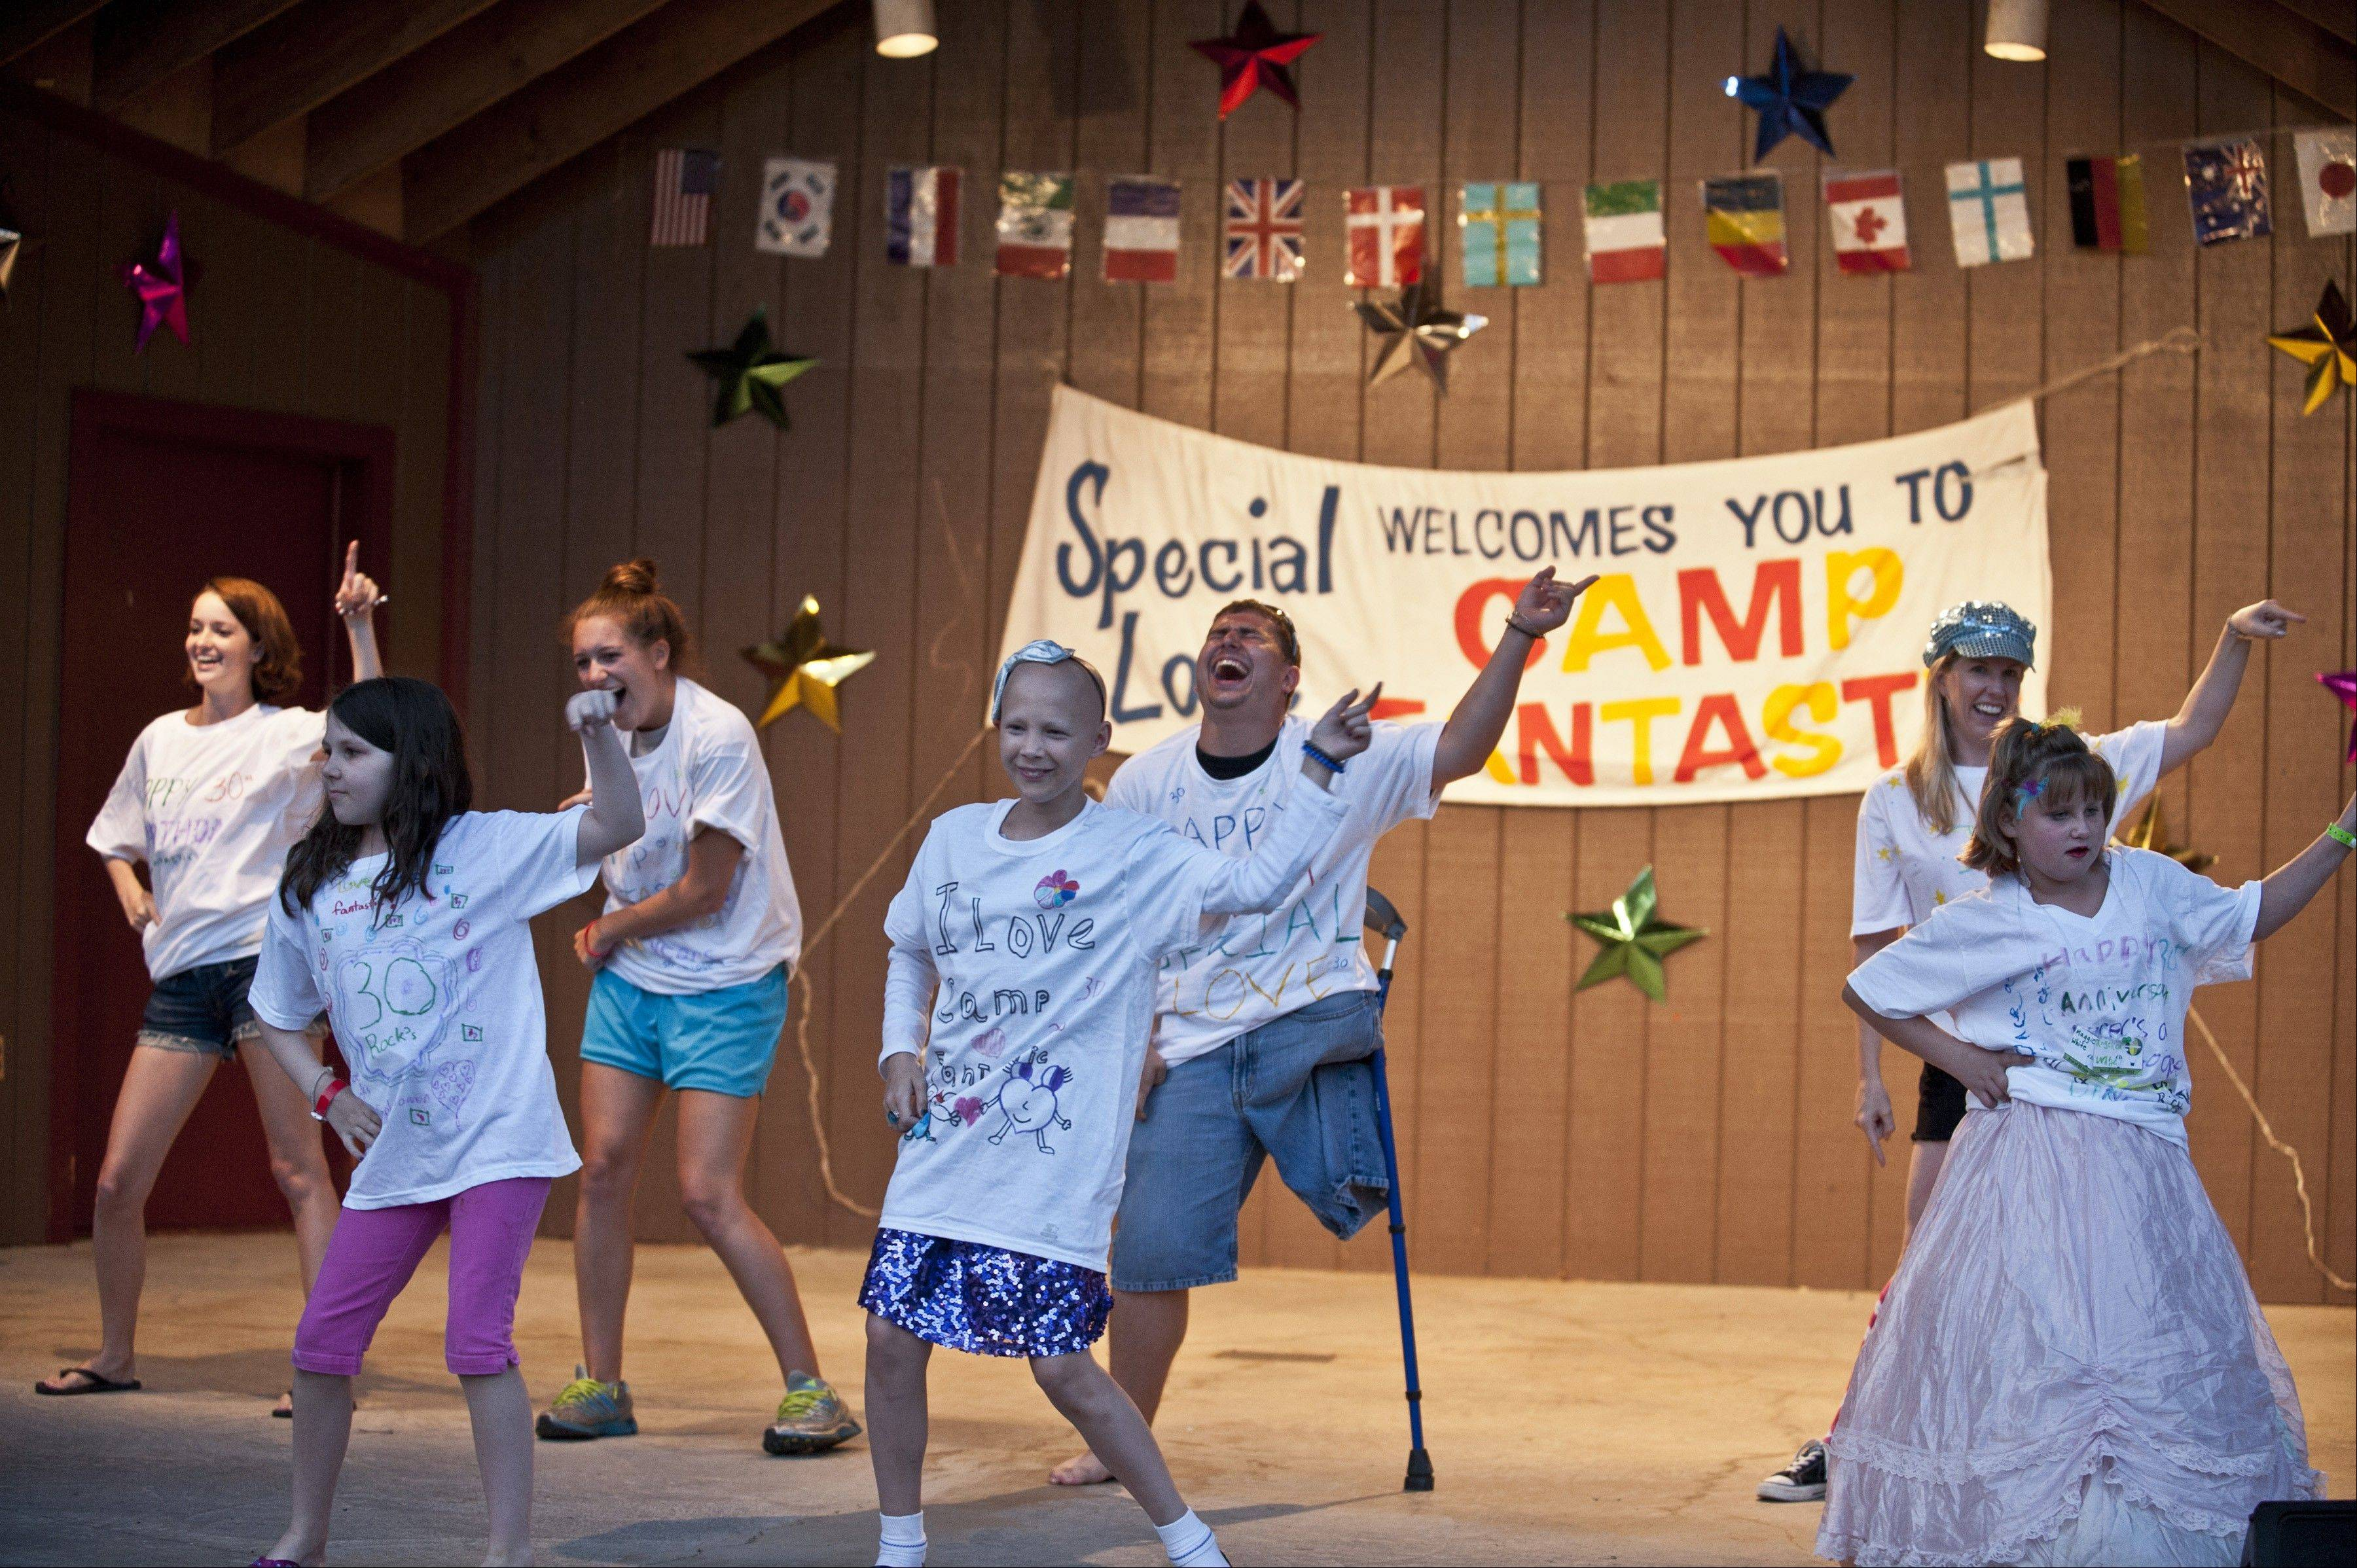 At Camp Fantastic in Front Royal, Va., Alesia Allen, 10, center, dances in front of counselor D.J. Conti during the talent show, which is a highlight of the weeklong getaway.